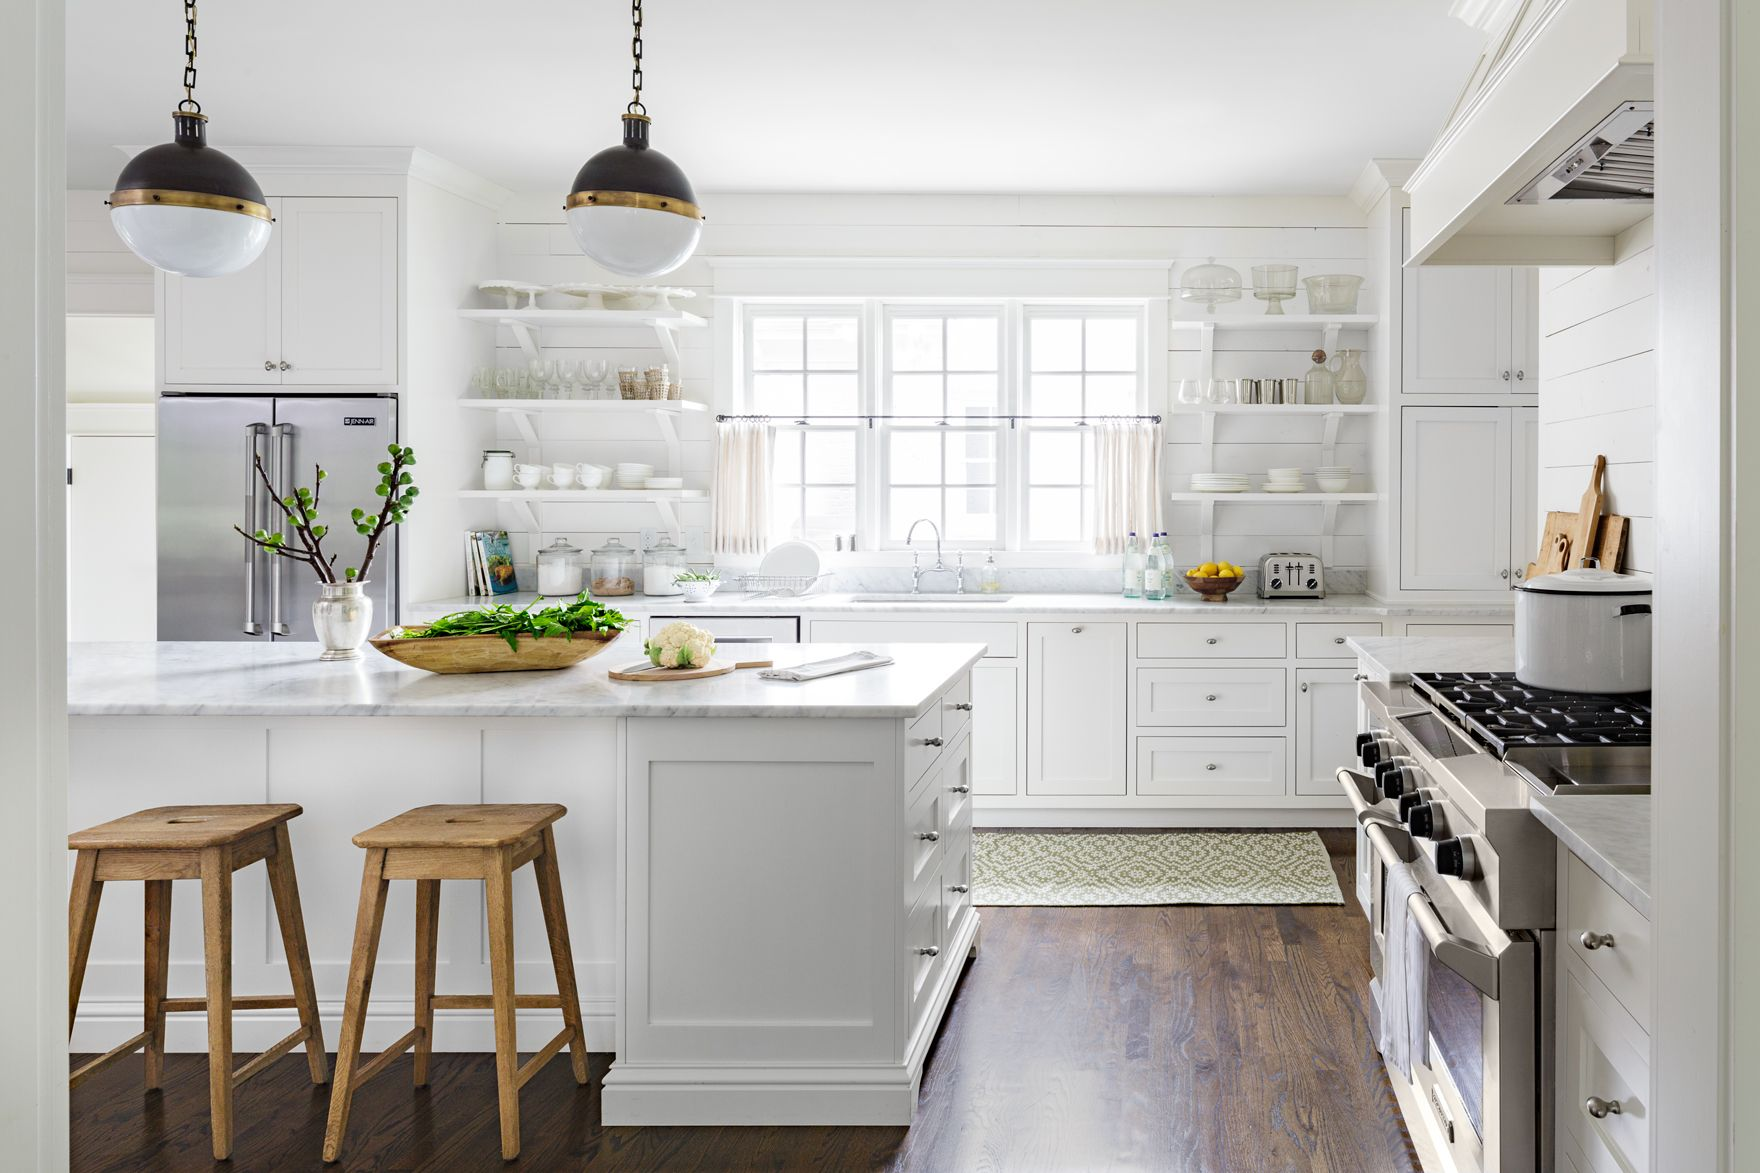 pure-country-kitchen2-0216.jpg